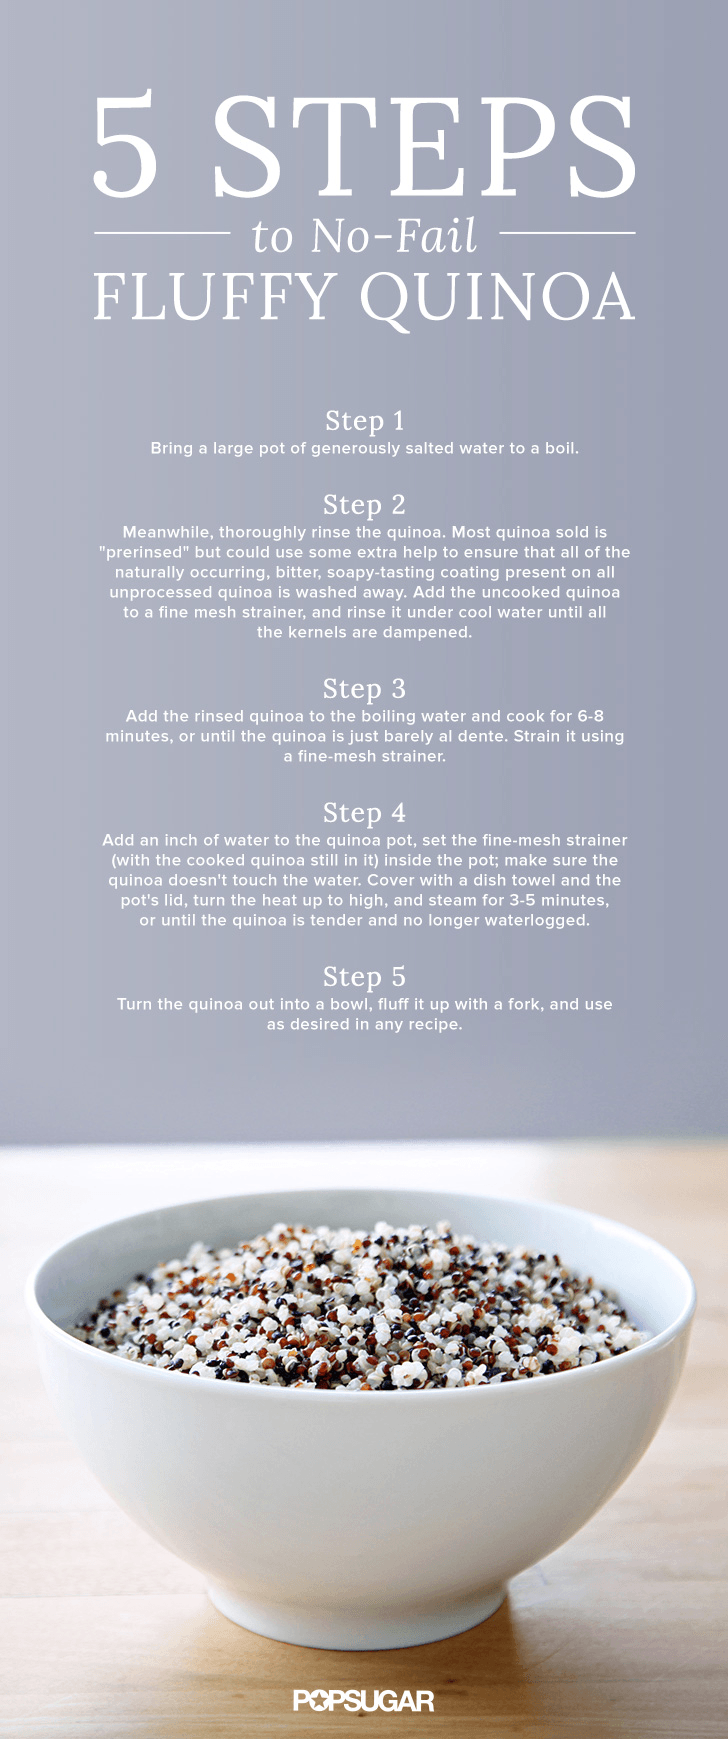 How to cook perfectly fluffy quinoa.